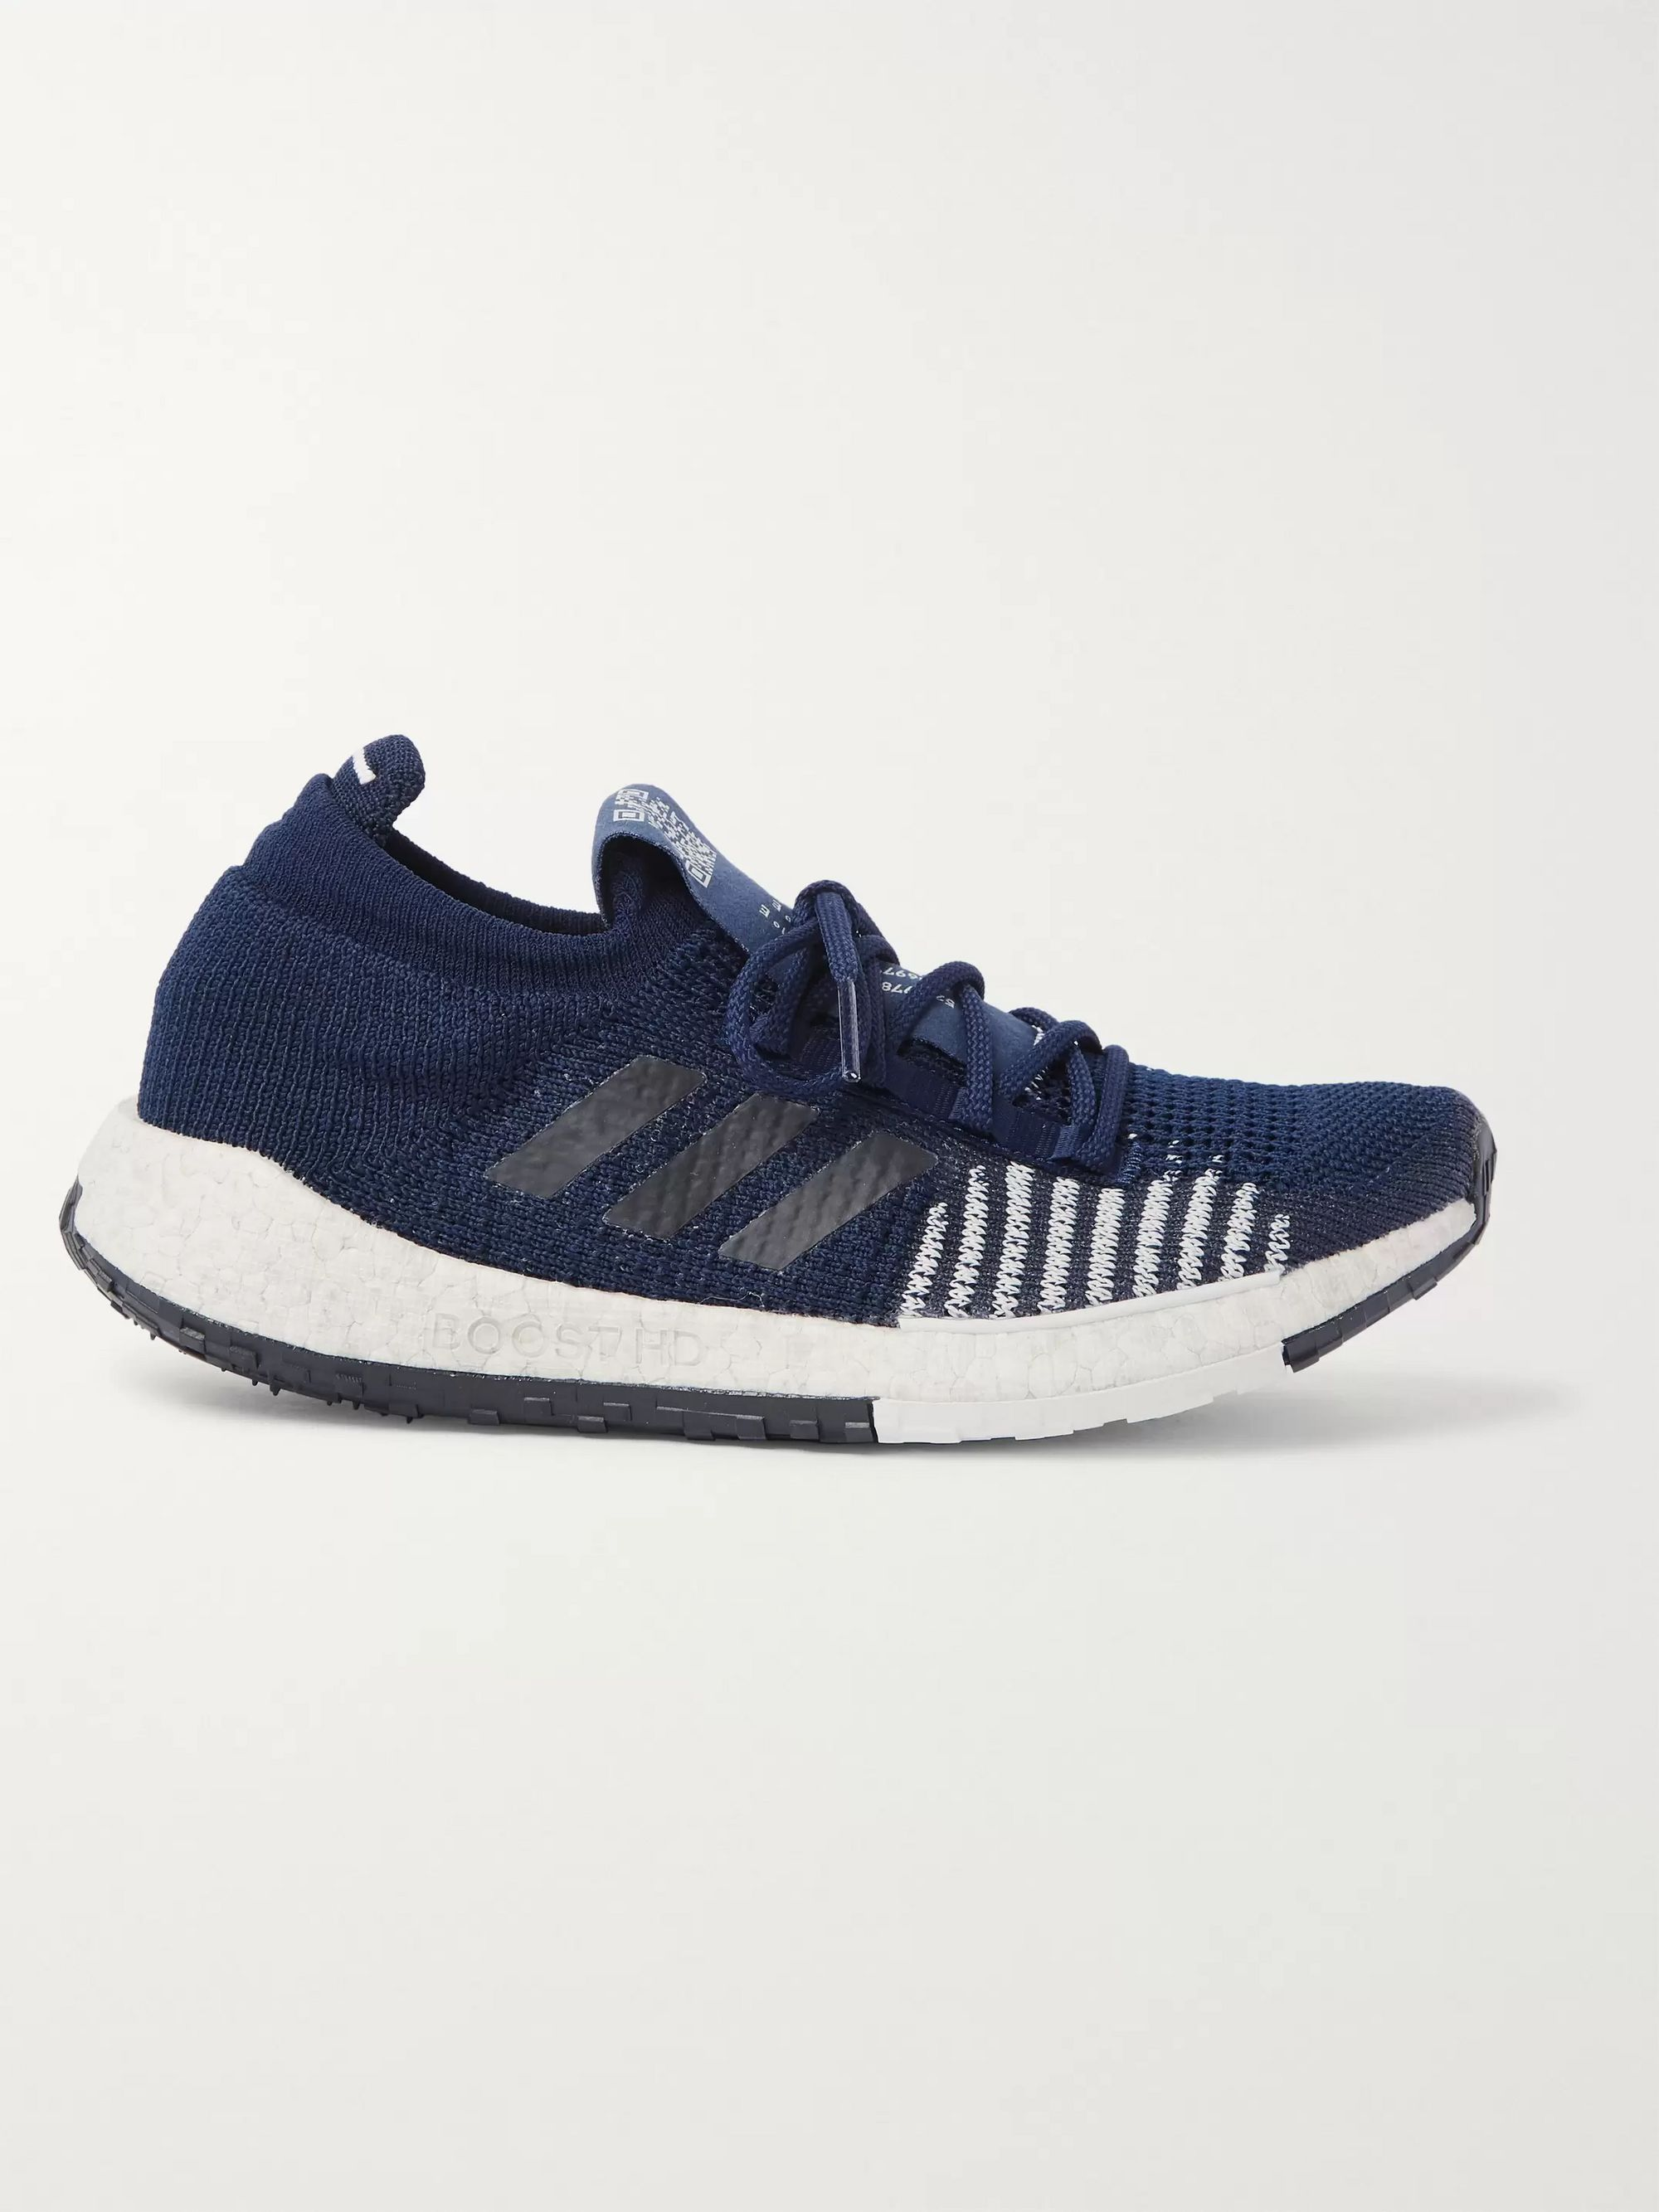 11 Most Comfortable Adidas Running Shoes